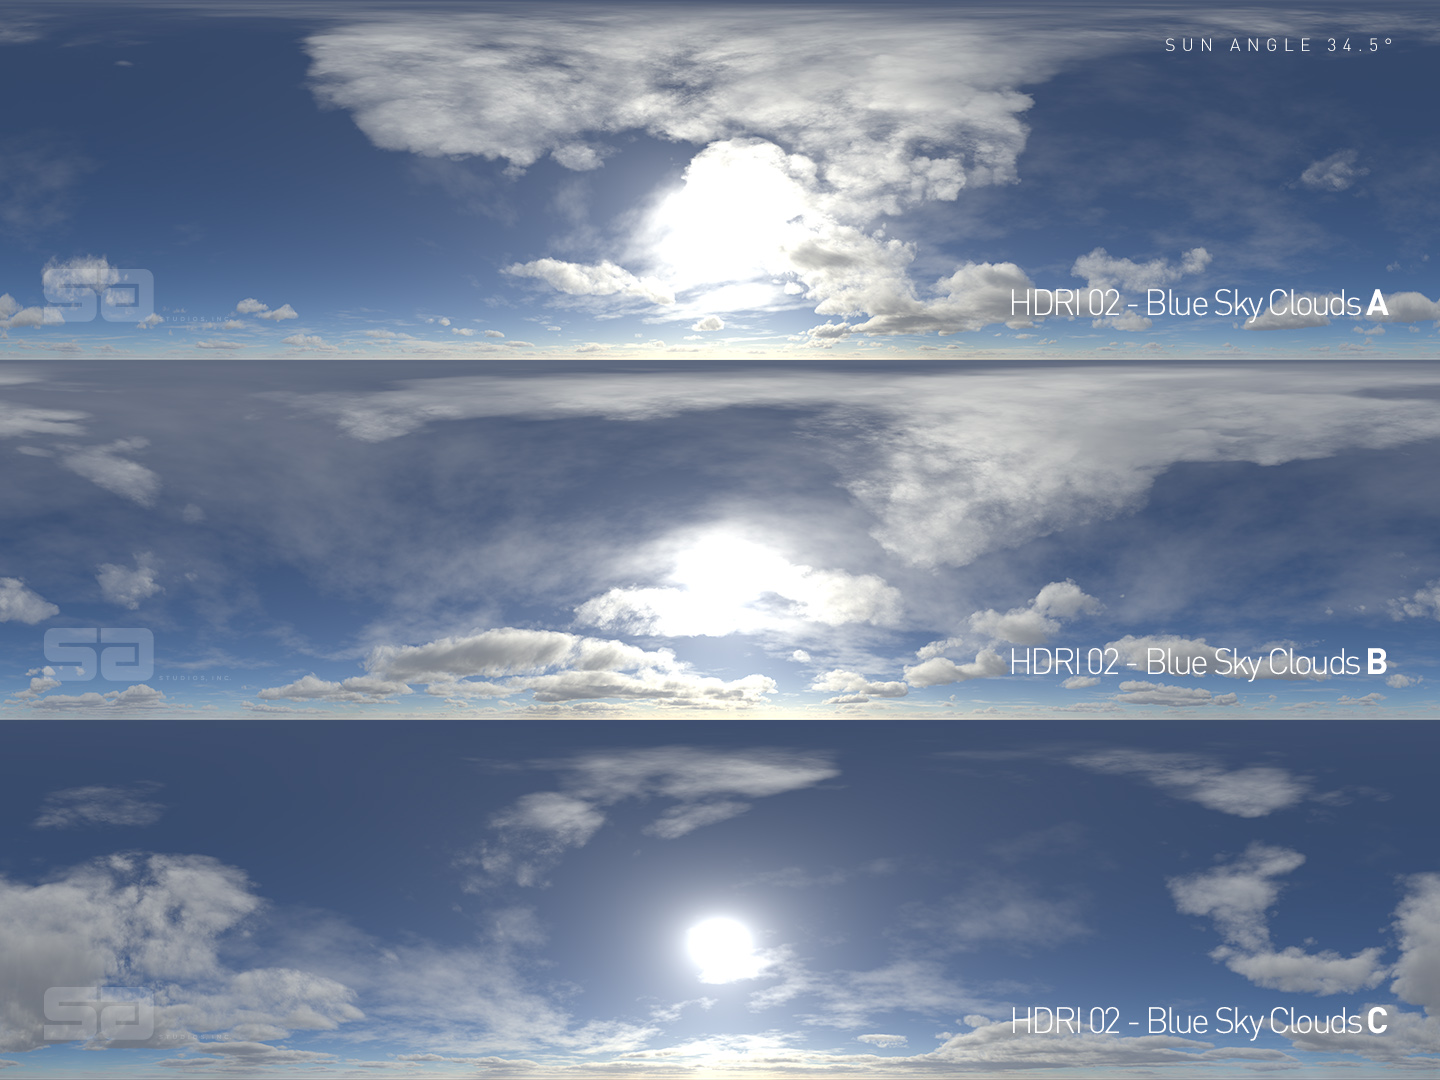 CG HDRI / Winter Collection Skies 01 from helloluxx